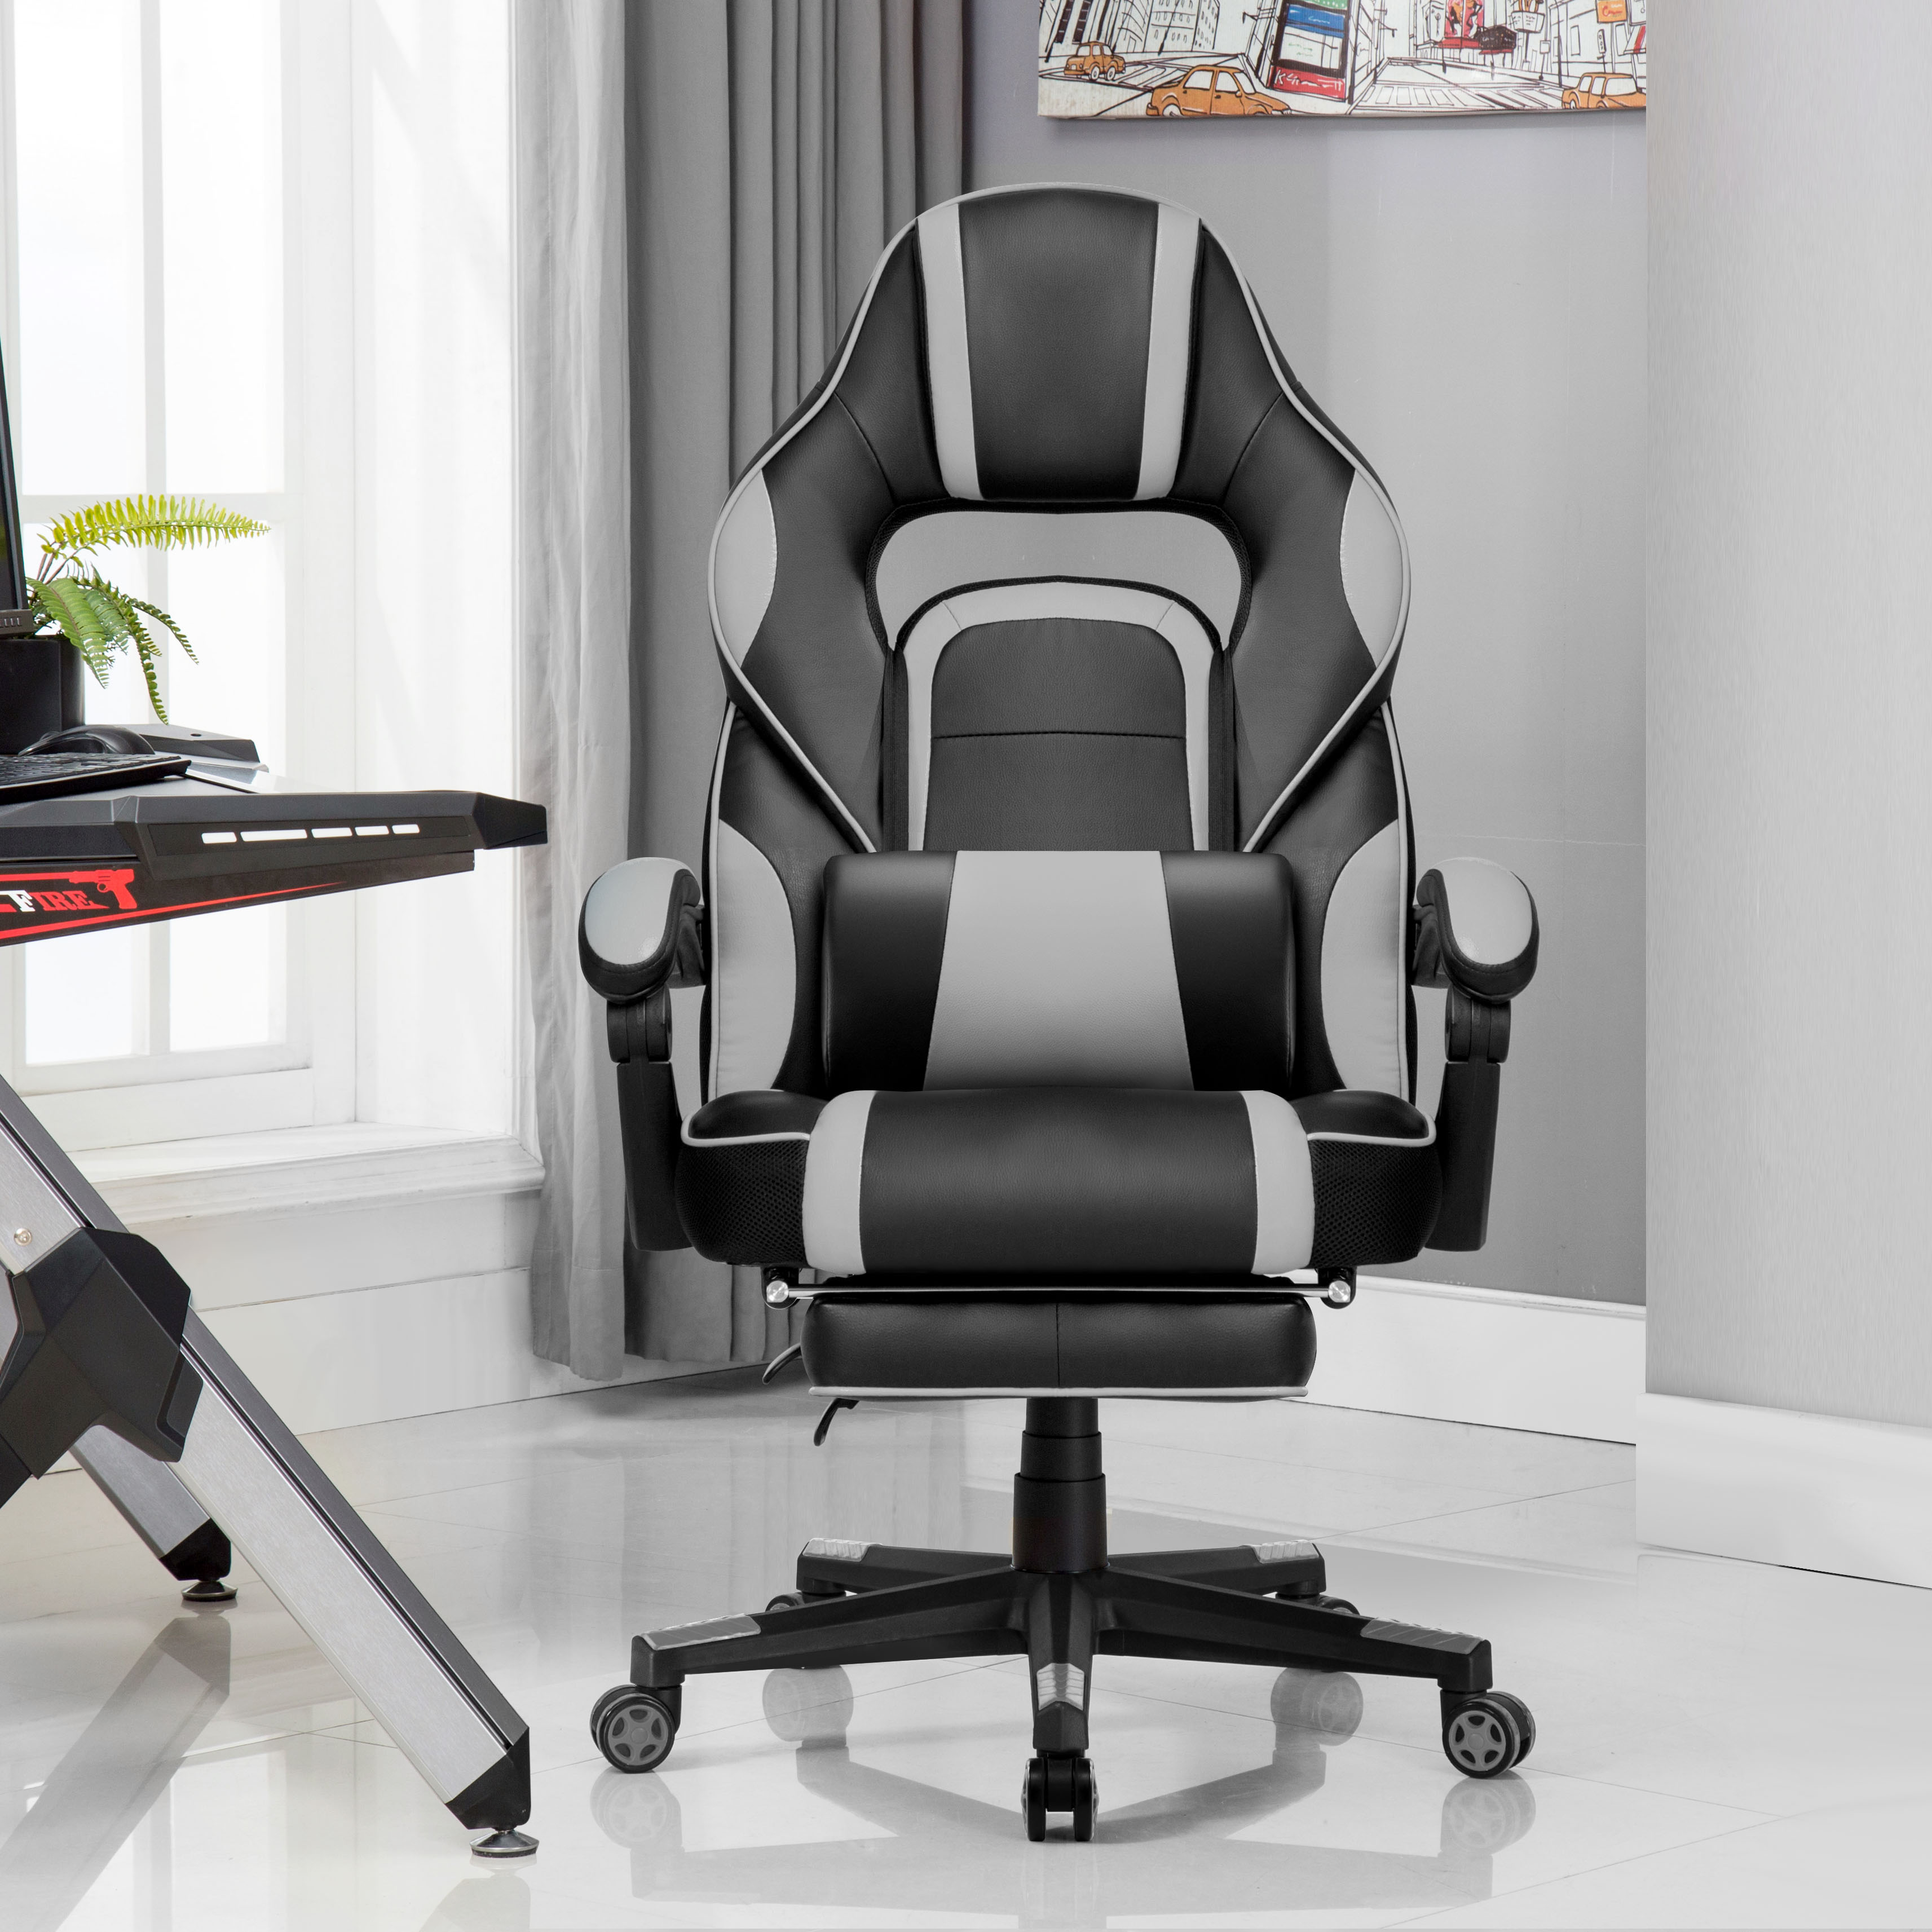 Executive Chair Faux Leather Office Gaming Chair Thick Padded Extendable Racing Gaming Chair With Footrest And Lumbar Cushion DE